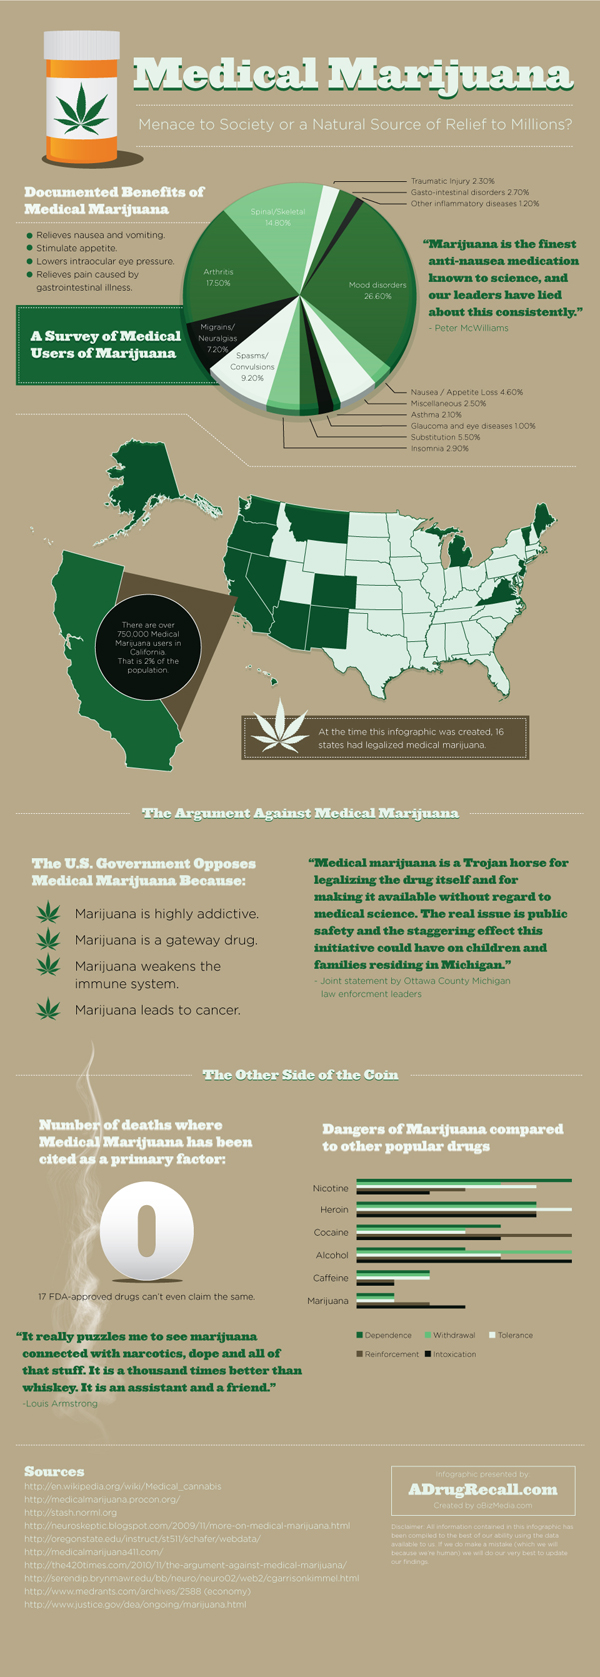 should medical marijuana be legalized essay essay arguments essay arguments visual argument your visual argument must an oral presentation of your